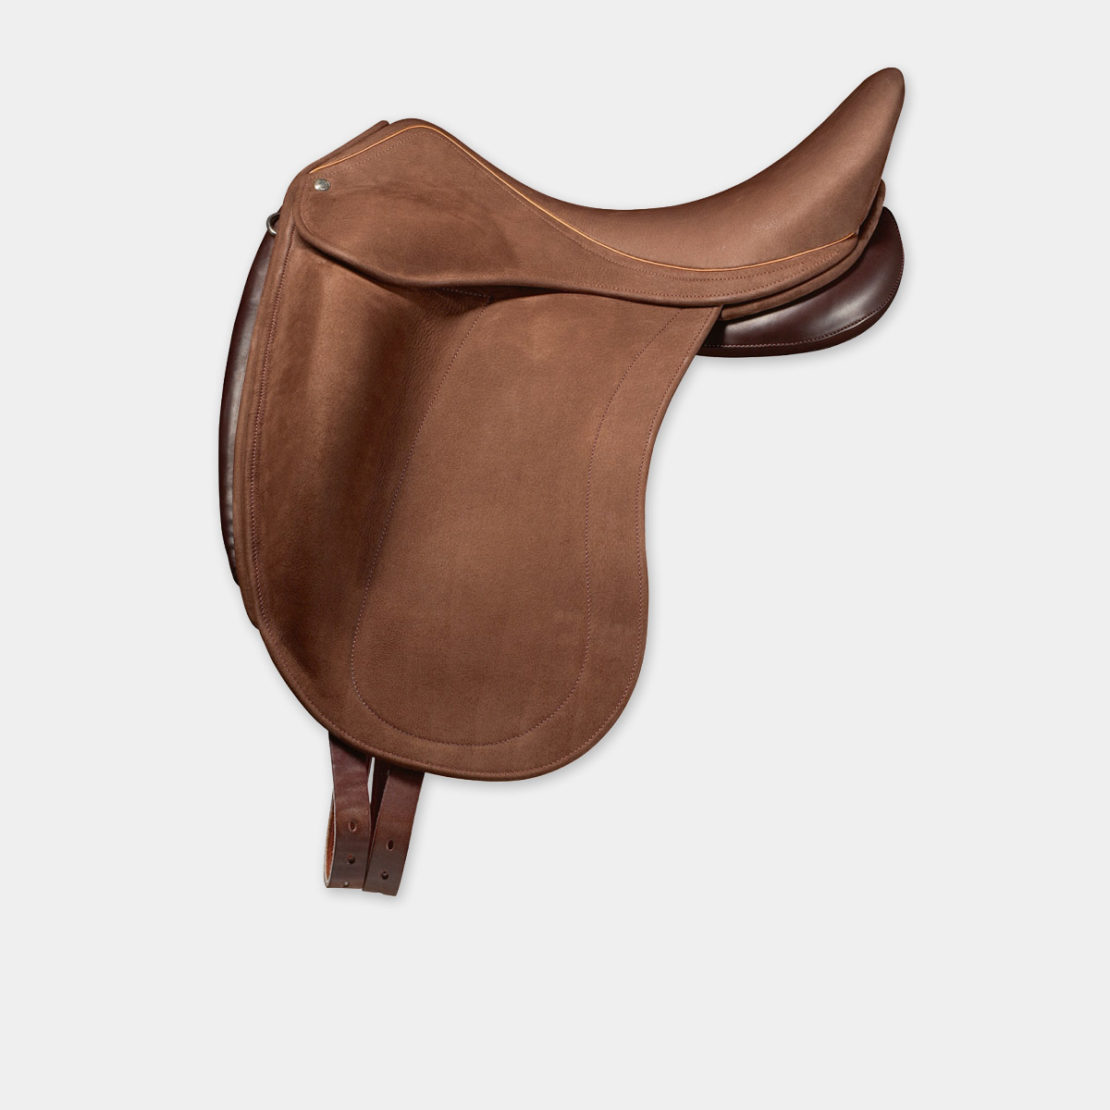 Bespoke saddles